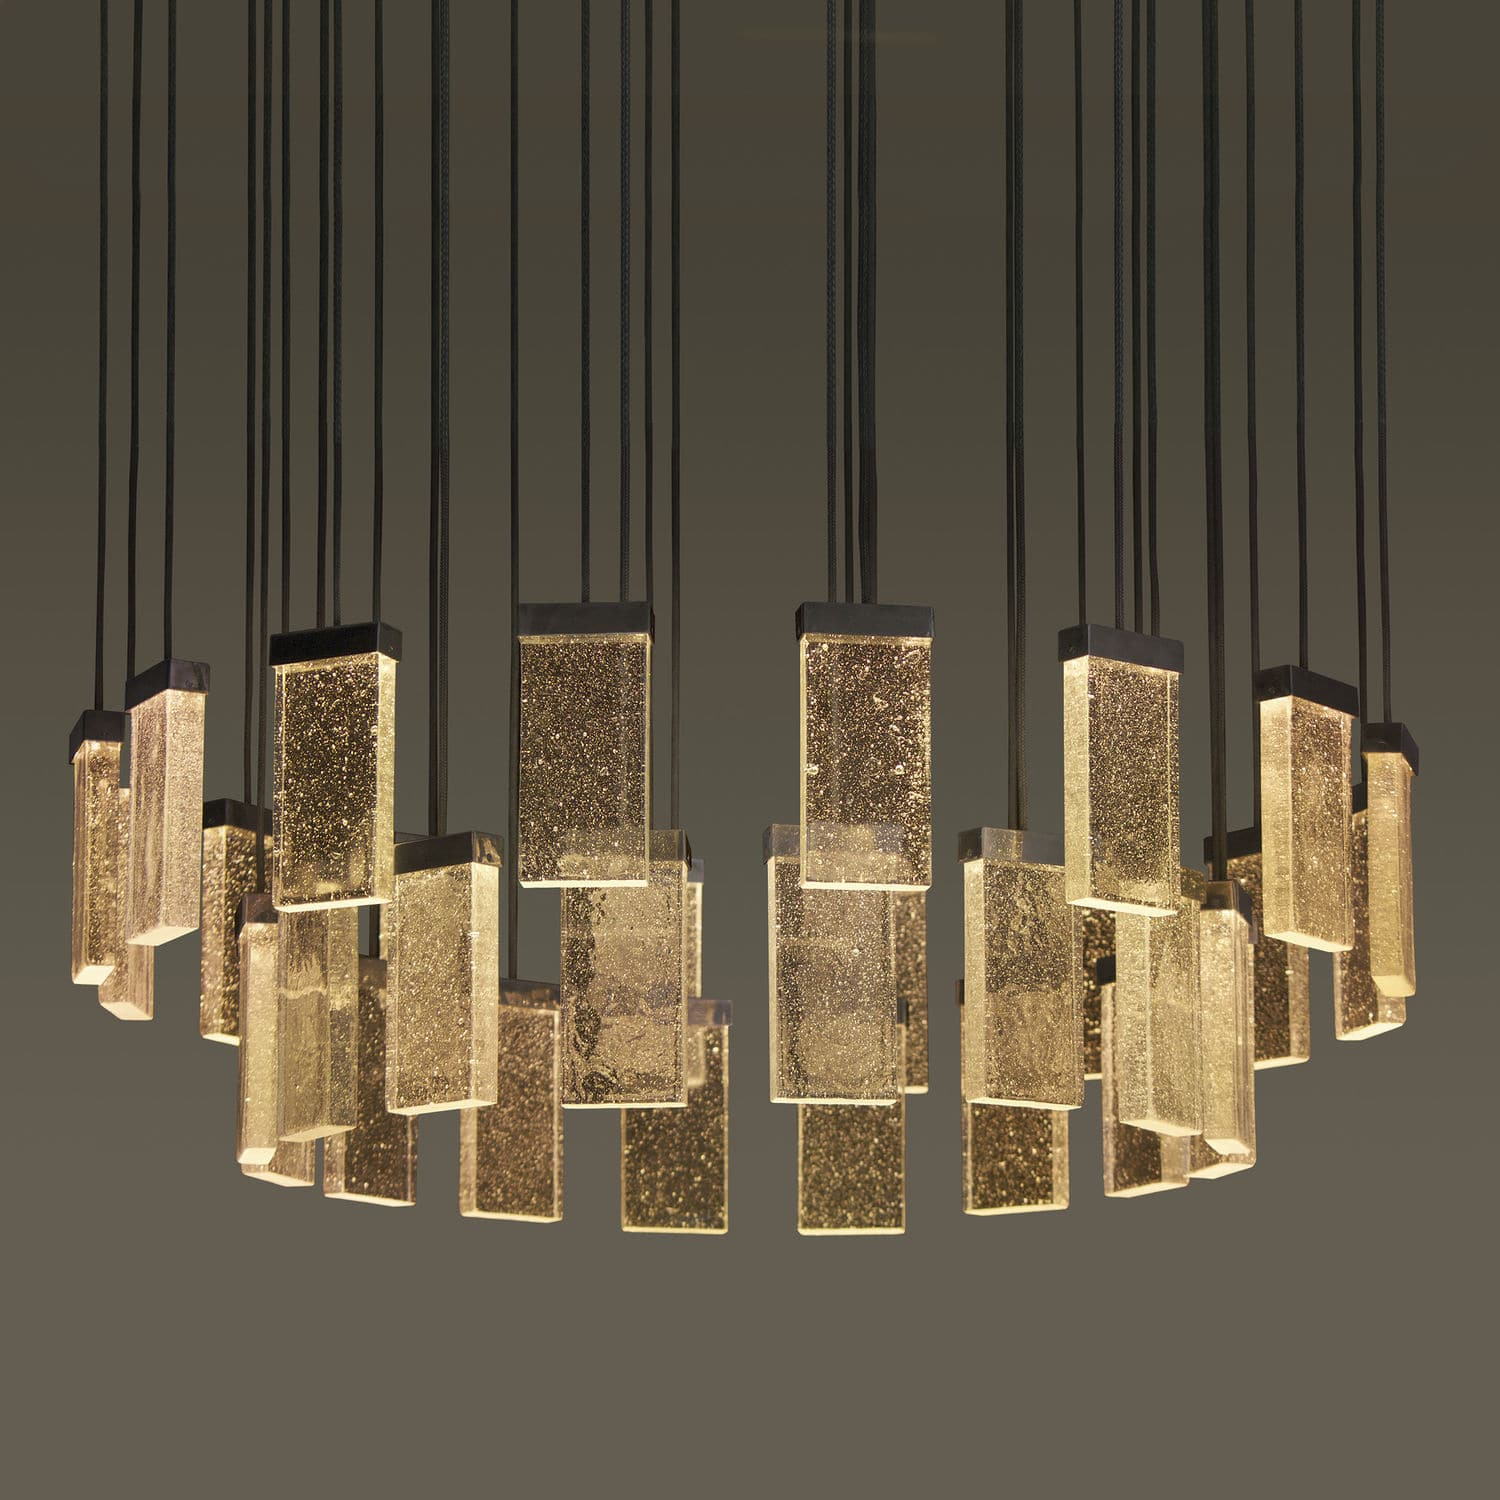 Image of: Contemporary Chandelier 32 Grand Cru Massifcentral Glass Aluminum Led